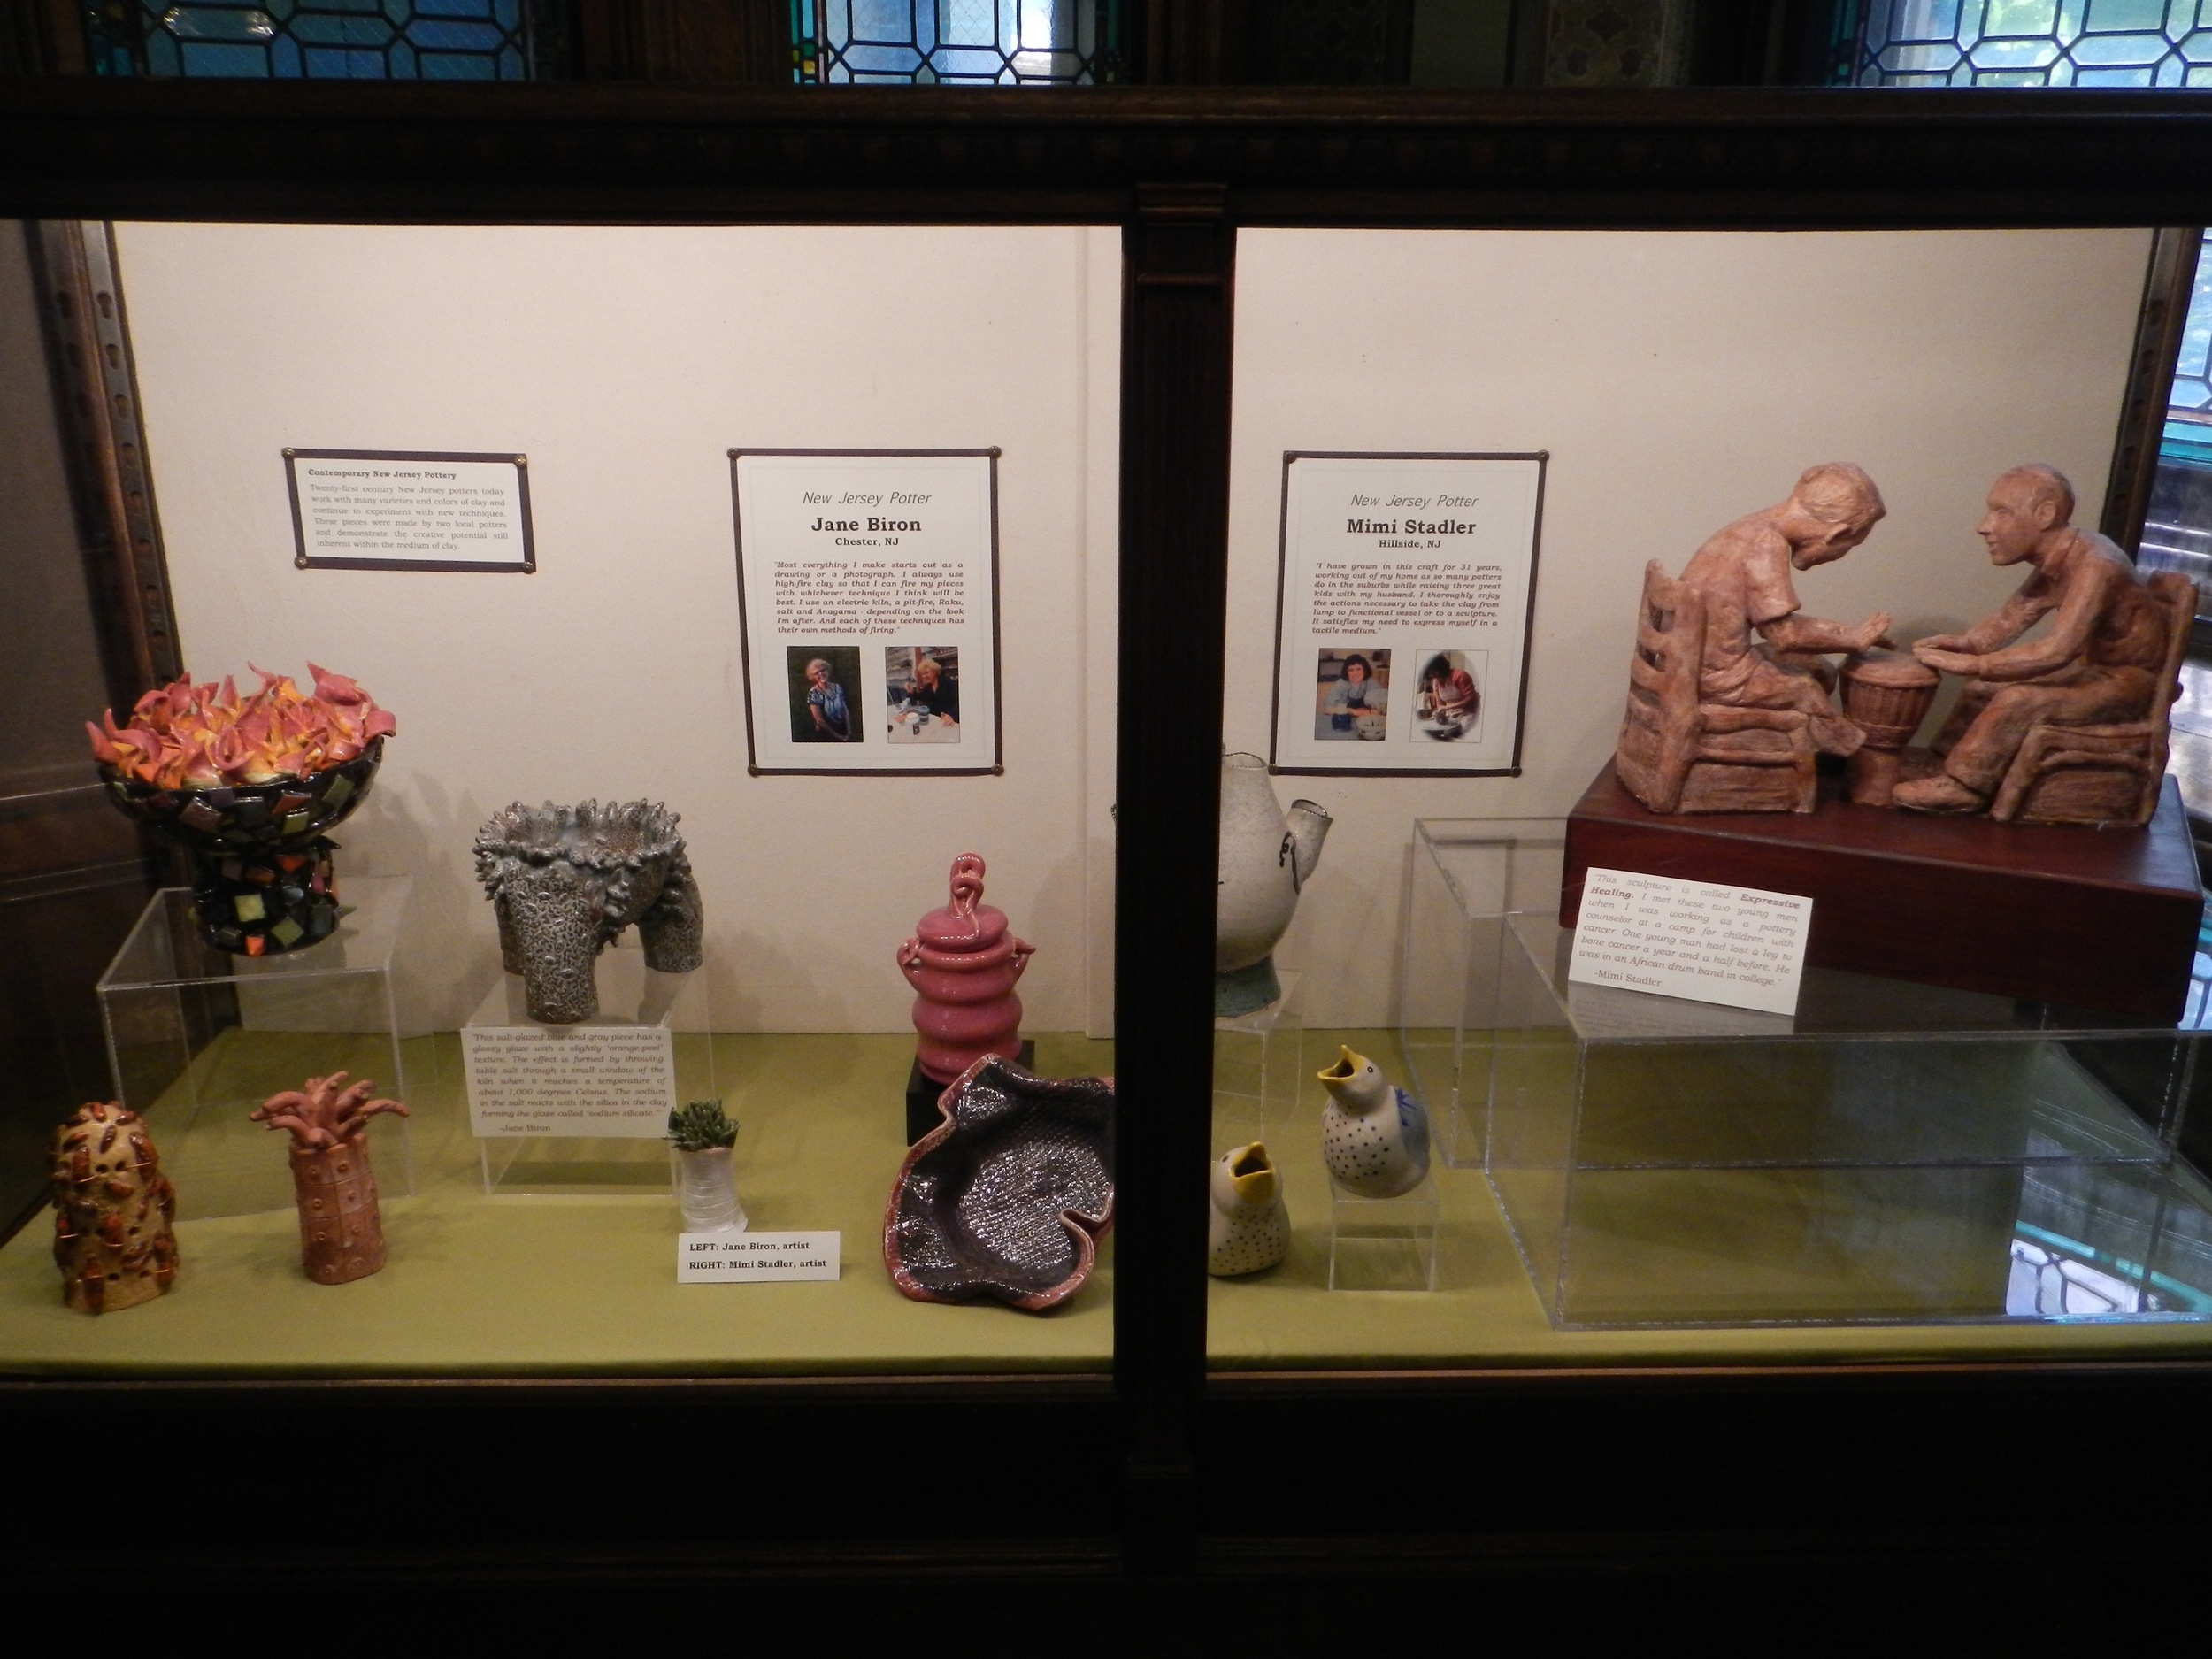 In the case at METC (photo, Mimi Stadler 2016) My work starts from the raspberry colored jar and to its right; Jane Biron's the 4 pieces to the left.